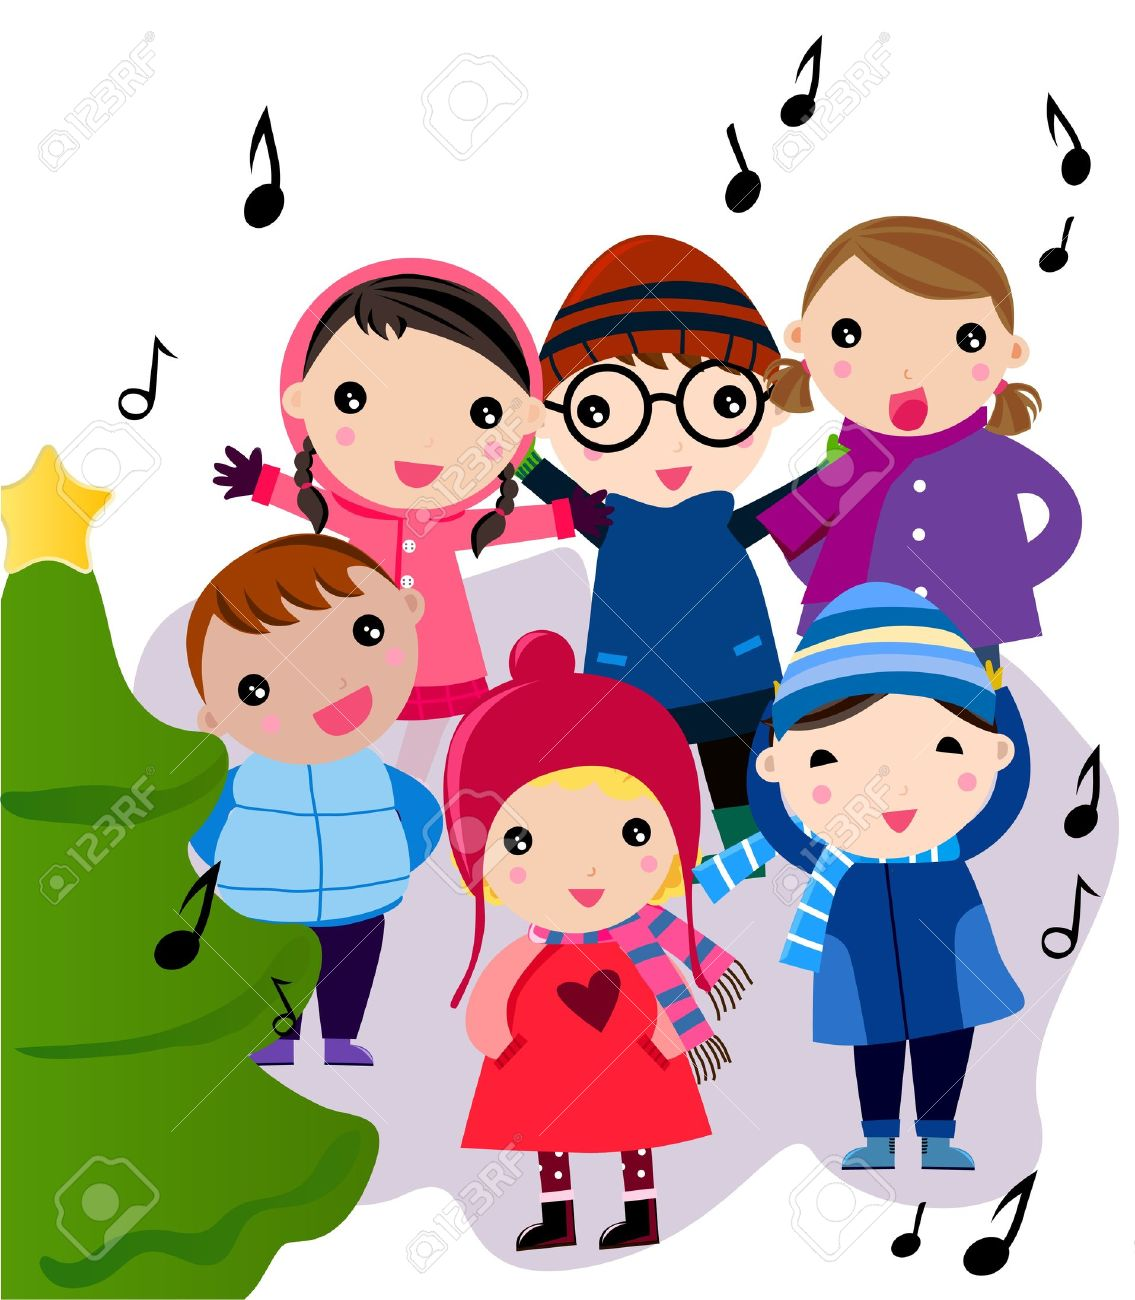 Christmas carol singers clipart.